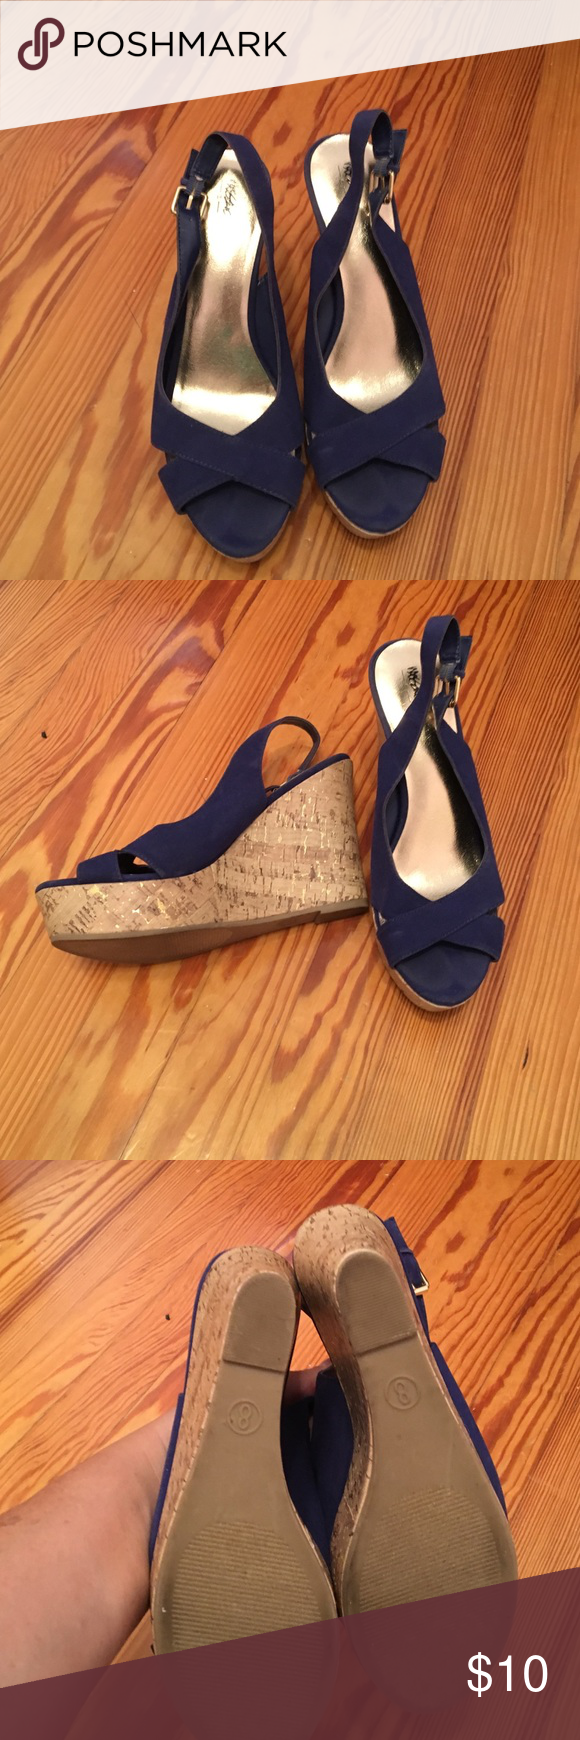 Wedge sling back sandals Royal blue sling back sandals with cork heel. Target brand. Really cute . Mossimo Supply Co Shoes Wedges